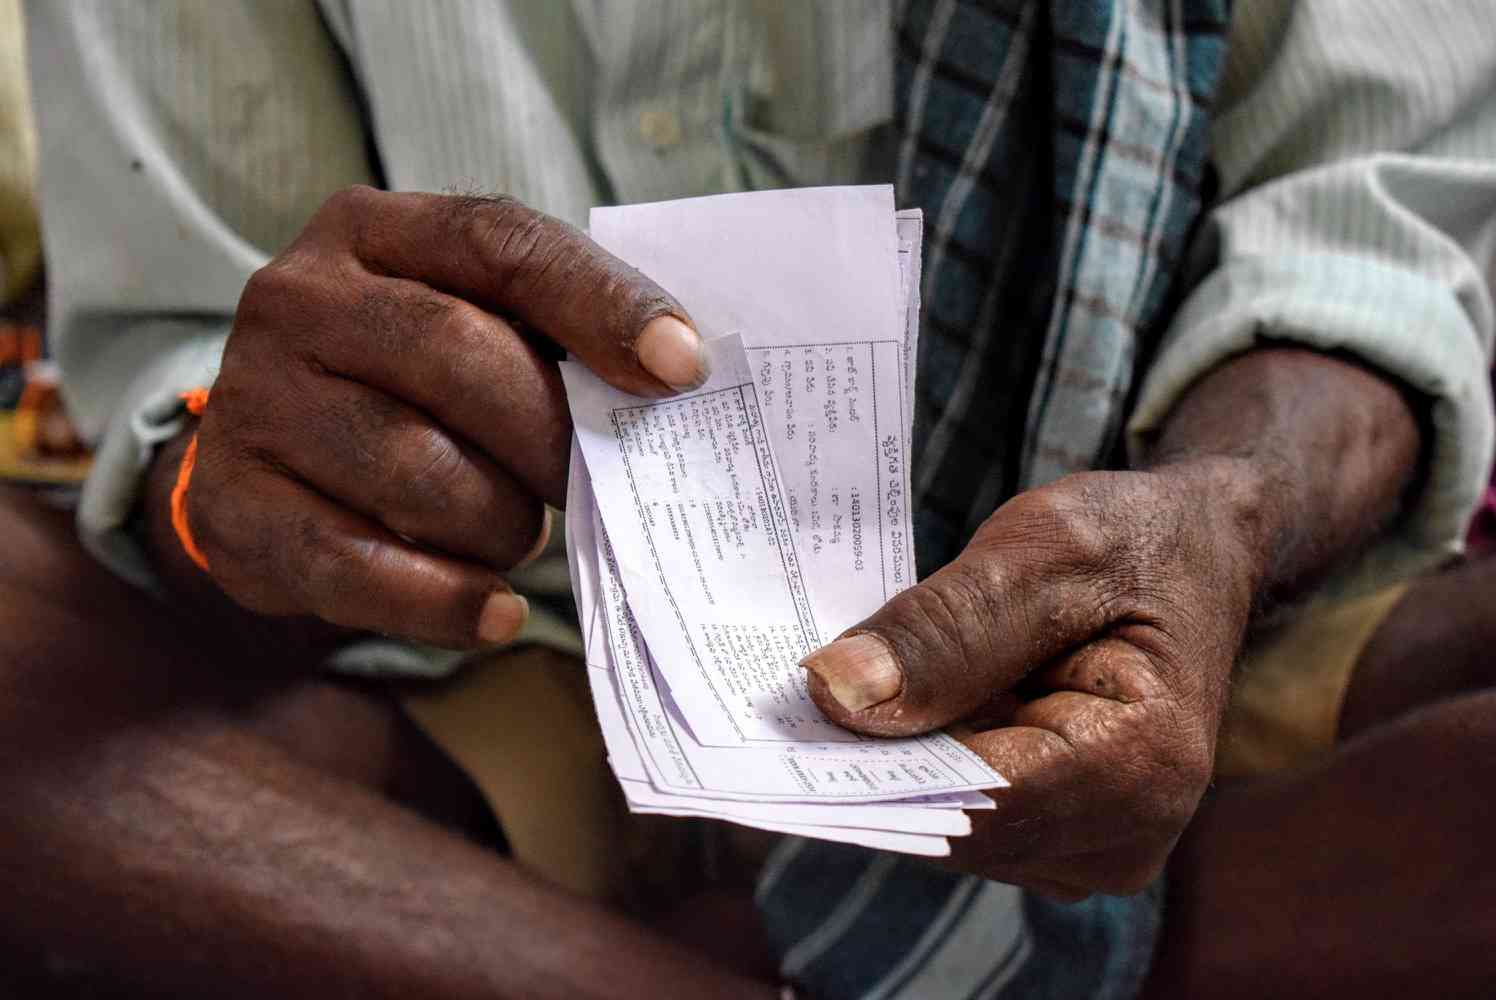 An old man clutches a bundle of paper slips showing the number of days he has worked under NREGA, work for which he has not been paid. Photo: Aruna Chandrasekhar